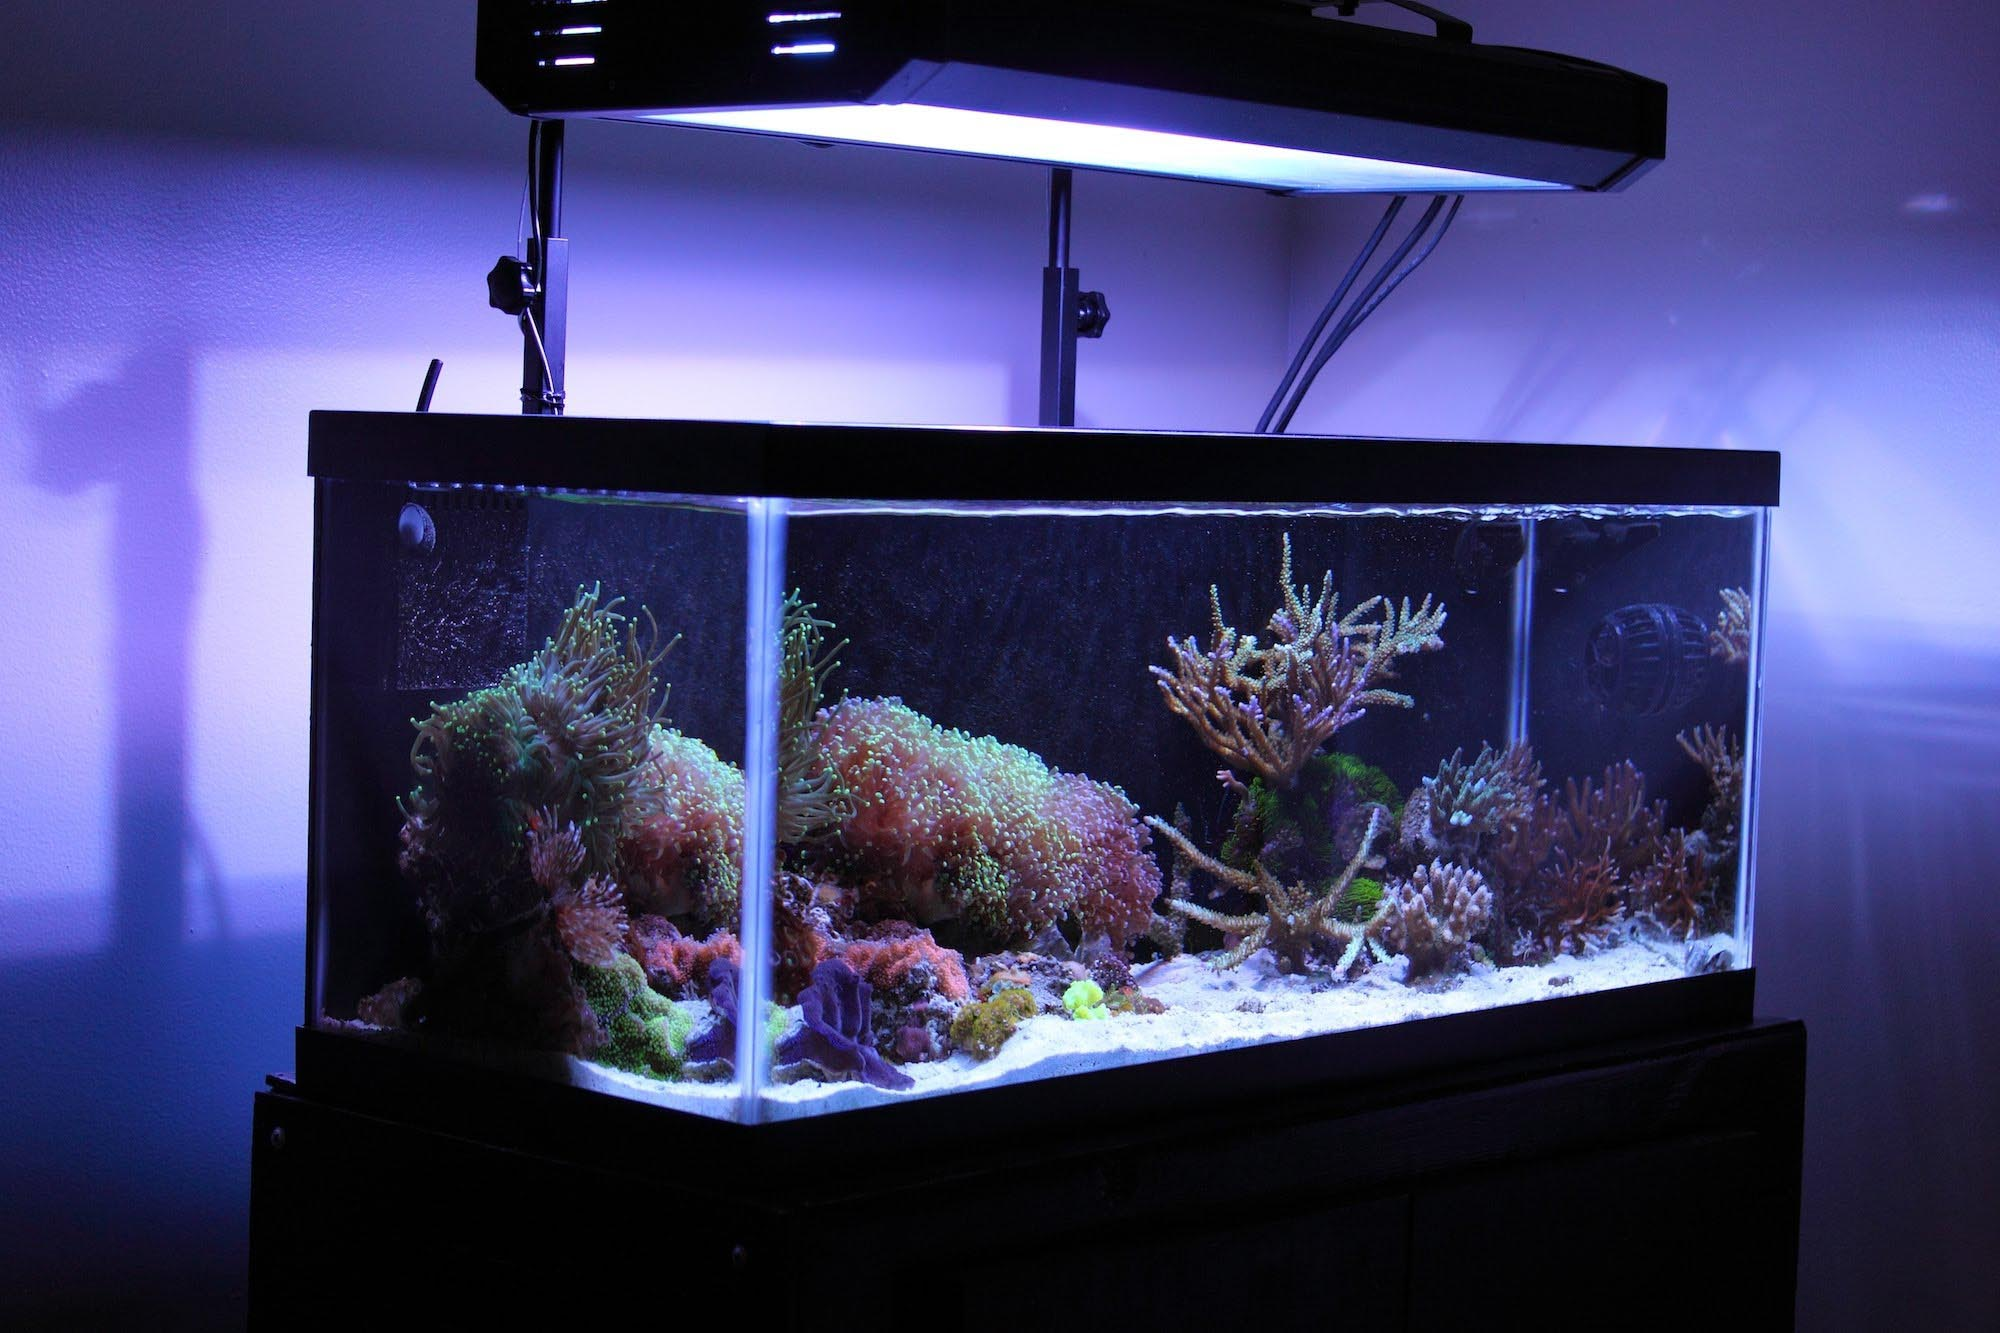 30 Gallon Tall Aquarium Dimensions Aquarium Design Ideas